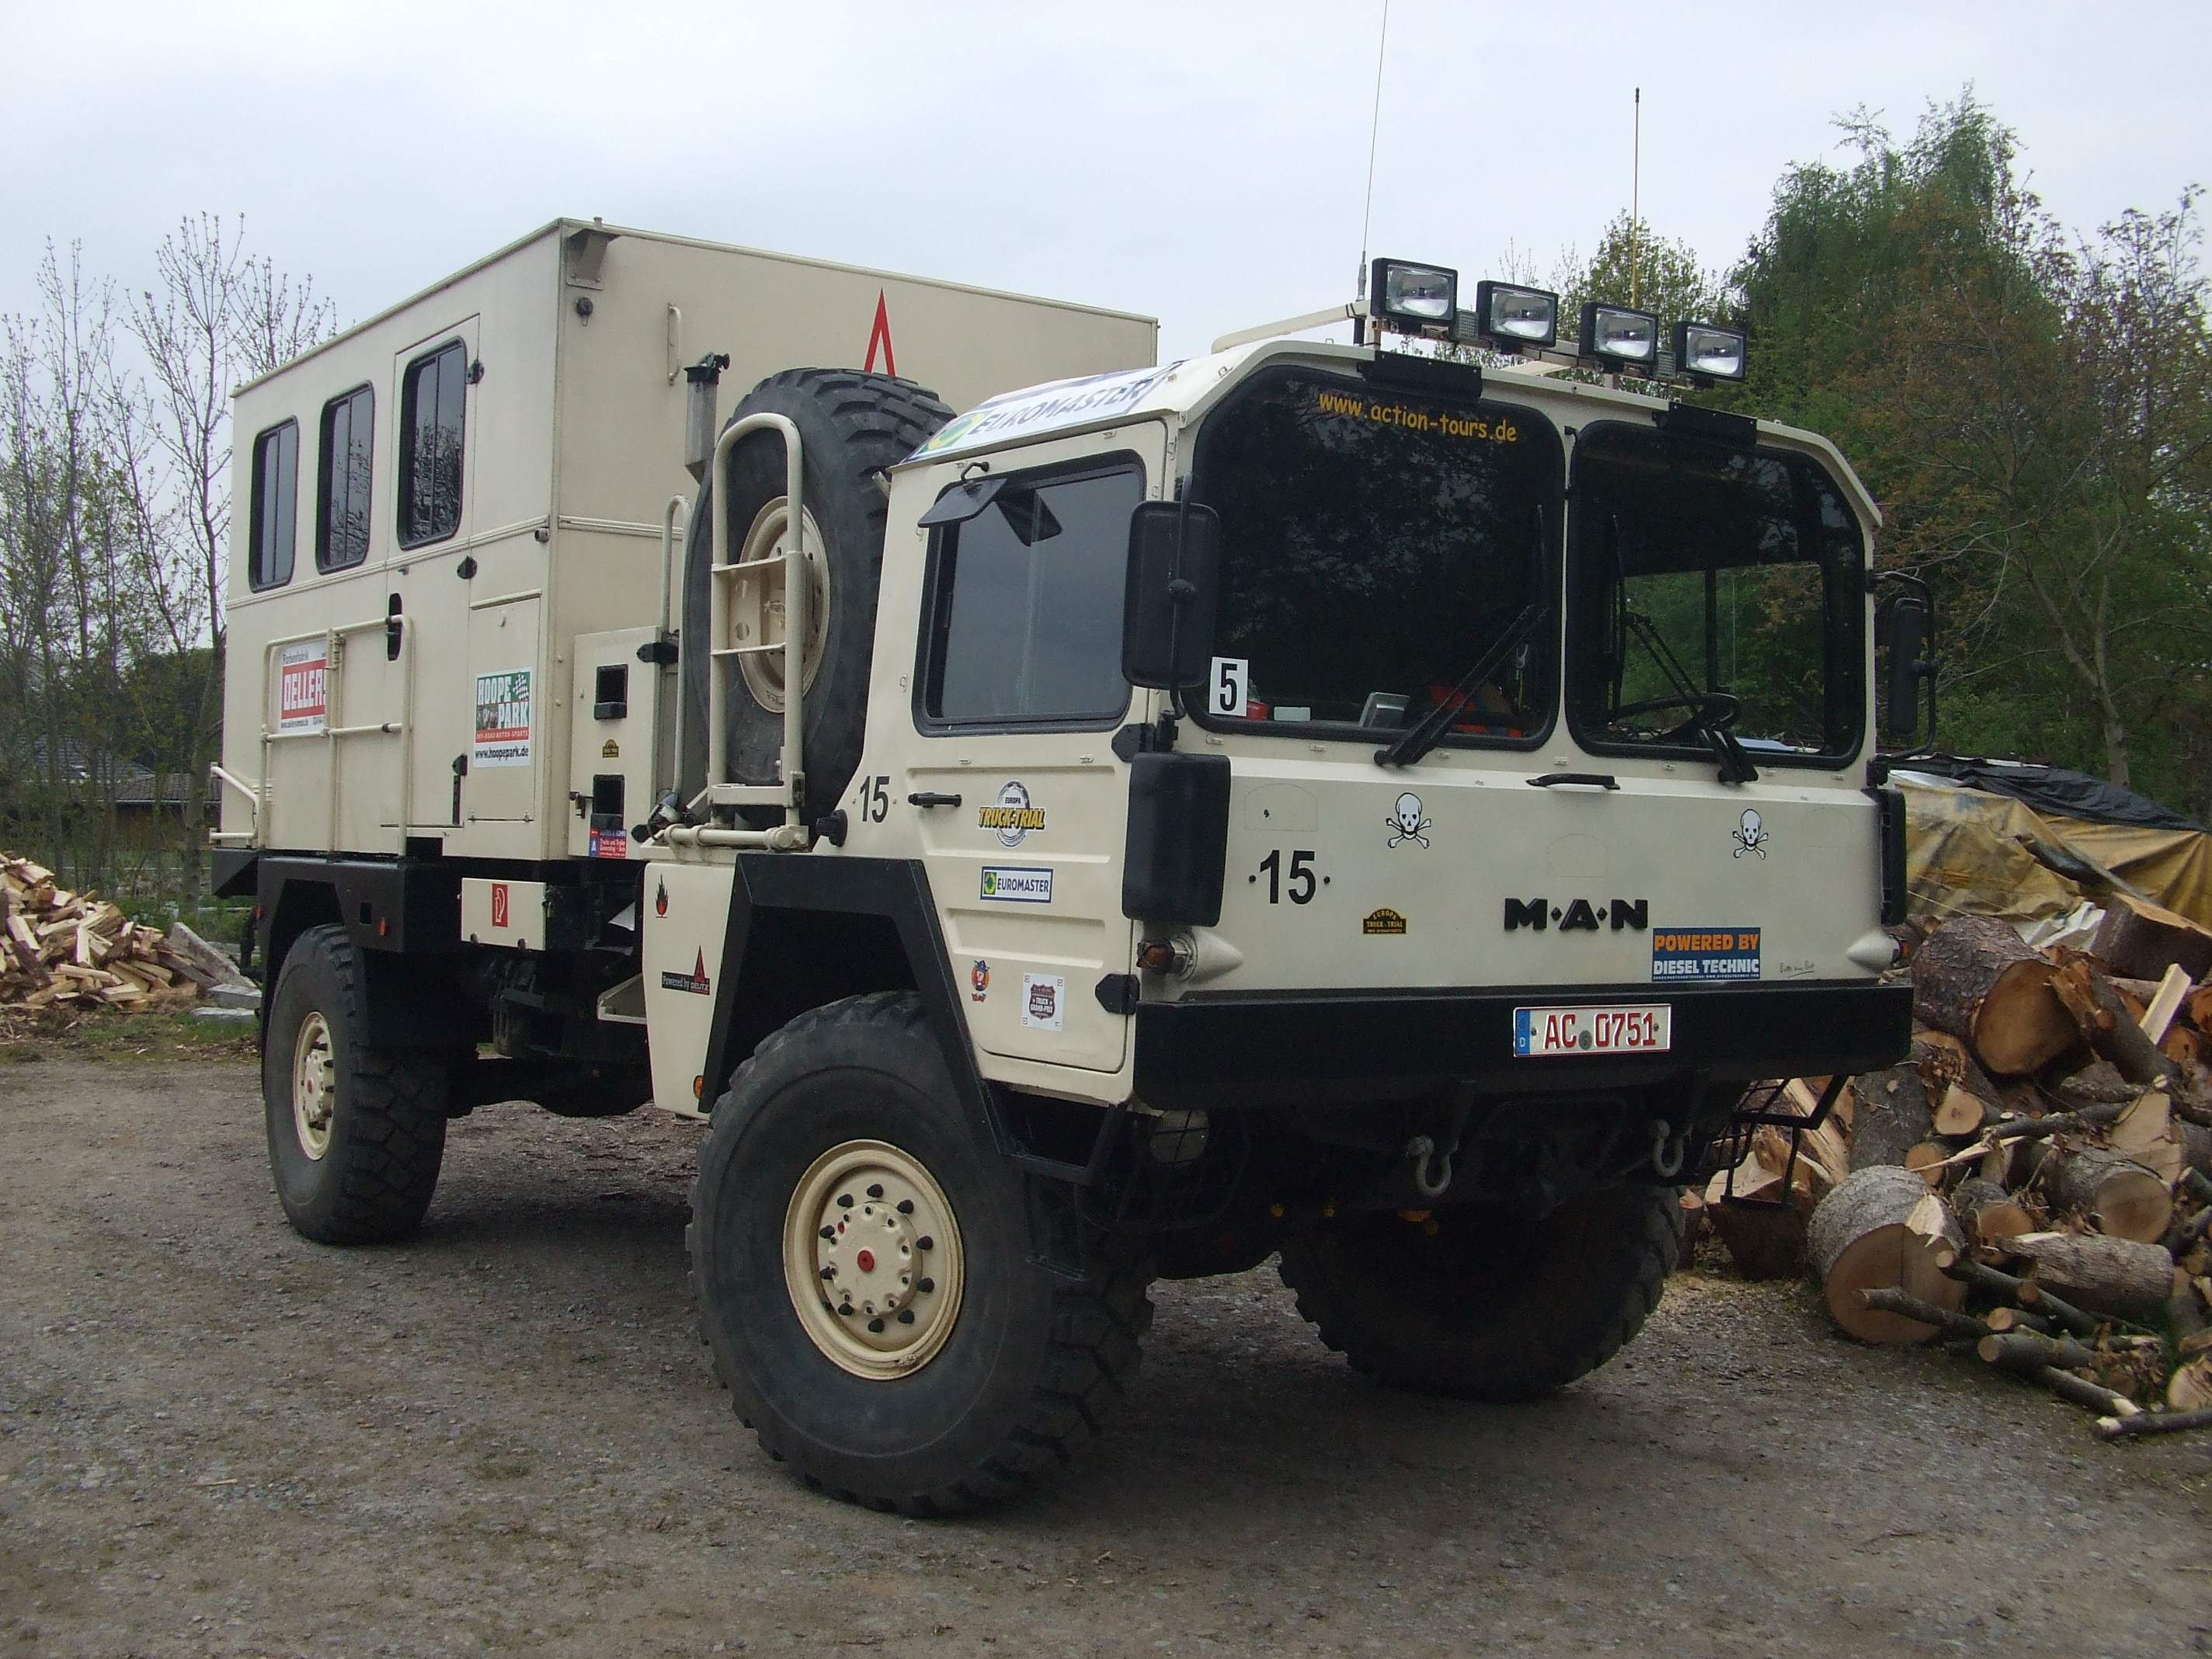 military man kat truck 4x4 traveller pinterest military man expedition truck and vehicle. Black Bedroom Furniture Sets. Home Design Ideas